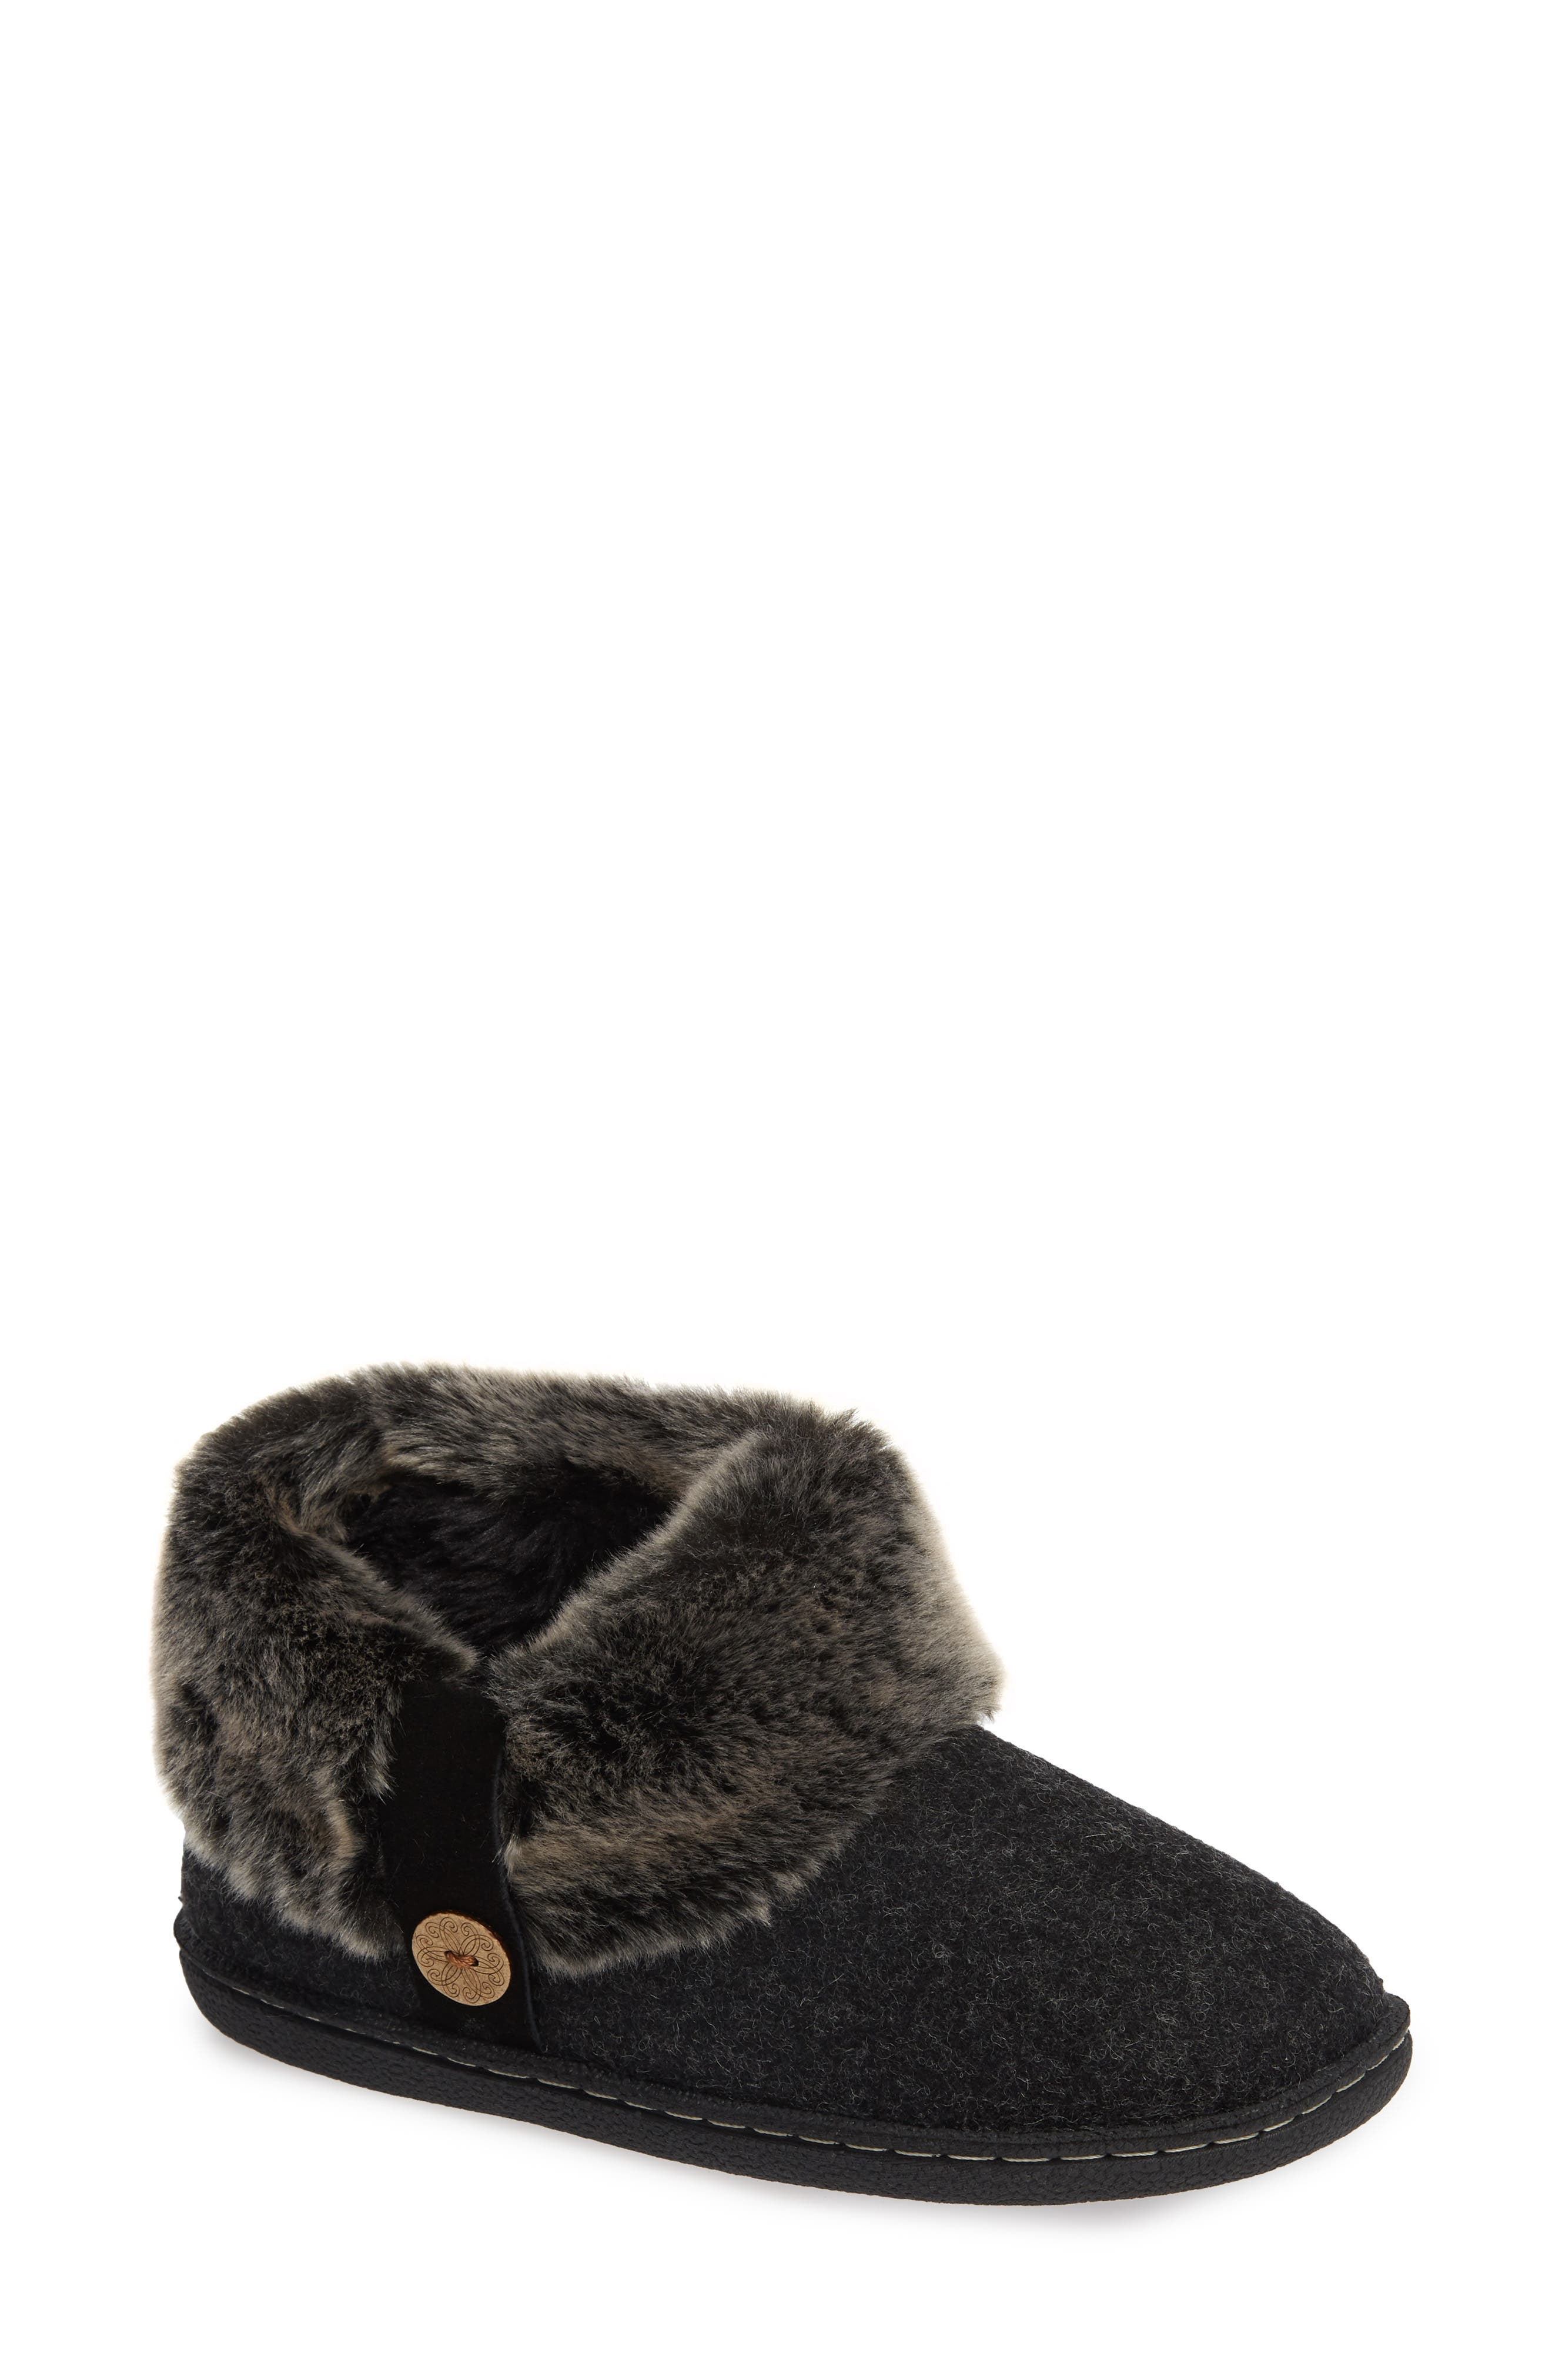 Grand Lodge Slipper,                             Main thumbnail 1, color,                             BLACK WOOL